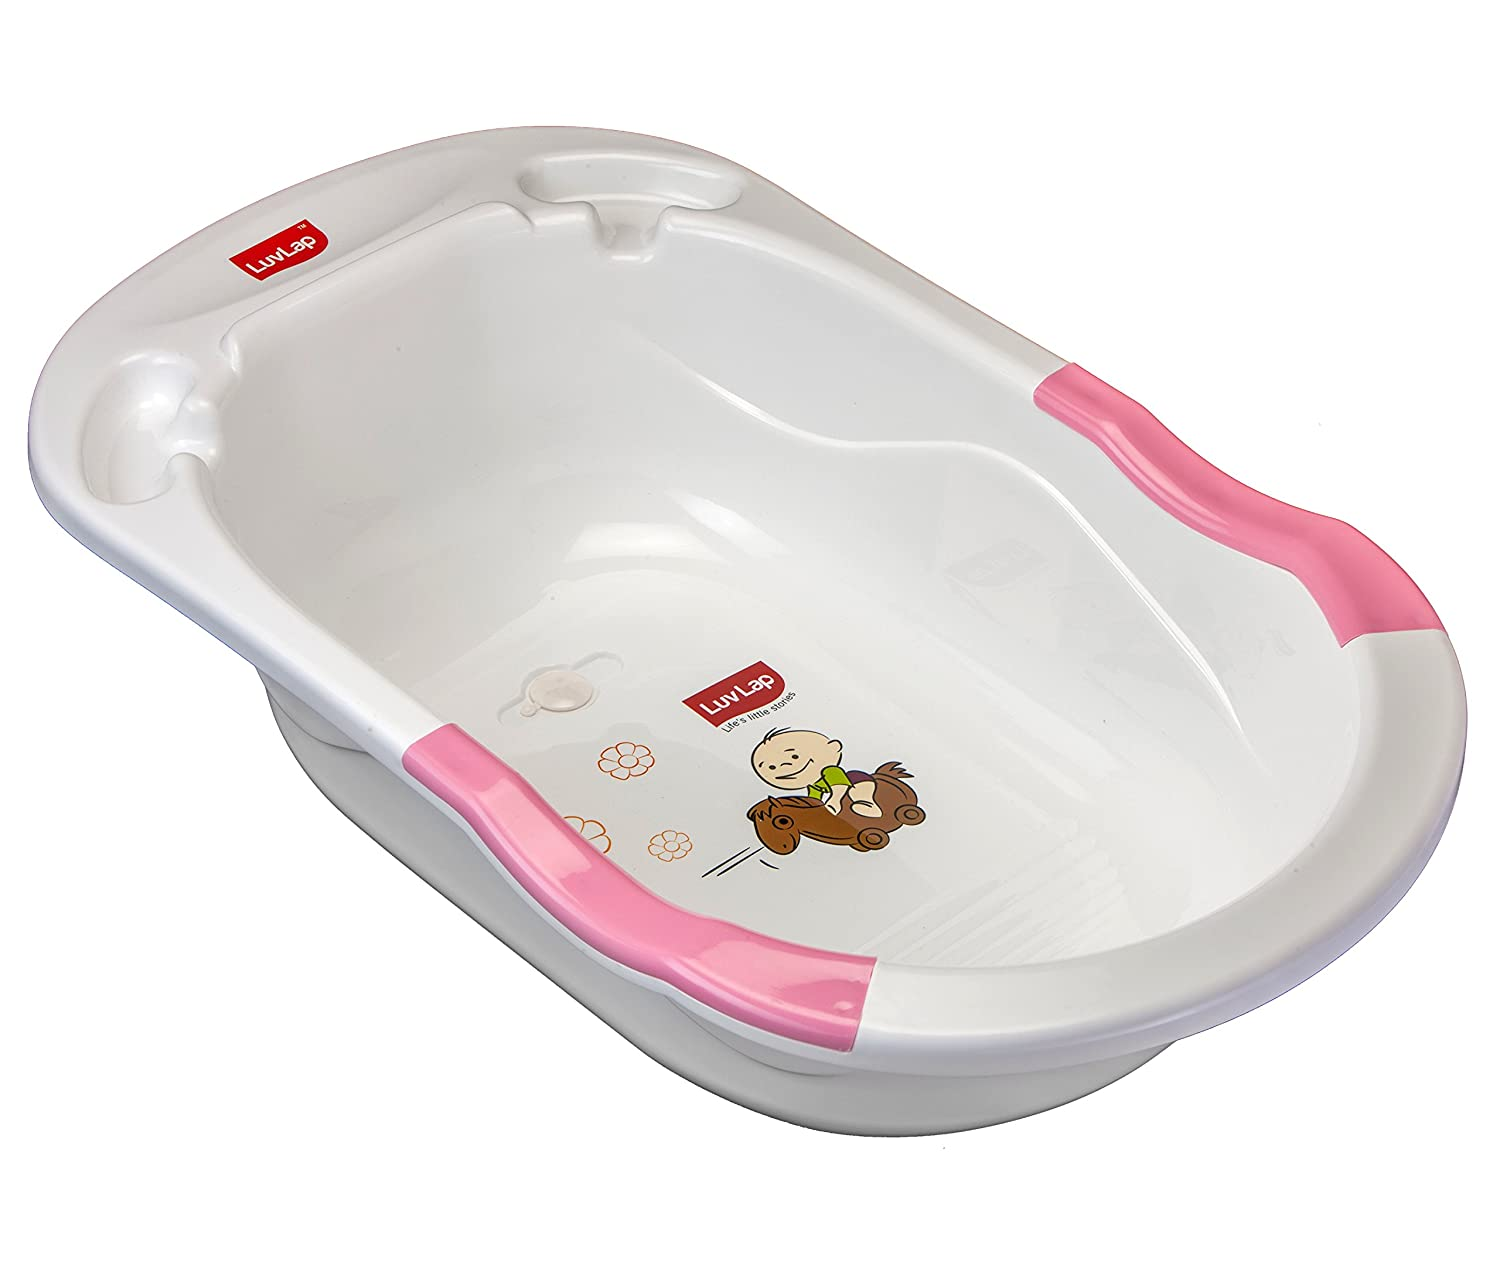 Baby Bath Tub: Buy Baby Bath Tub online at best prices in India ...